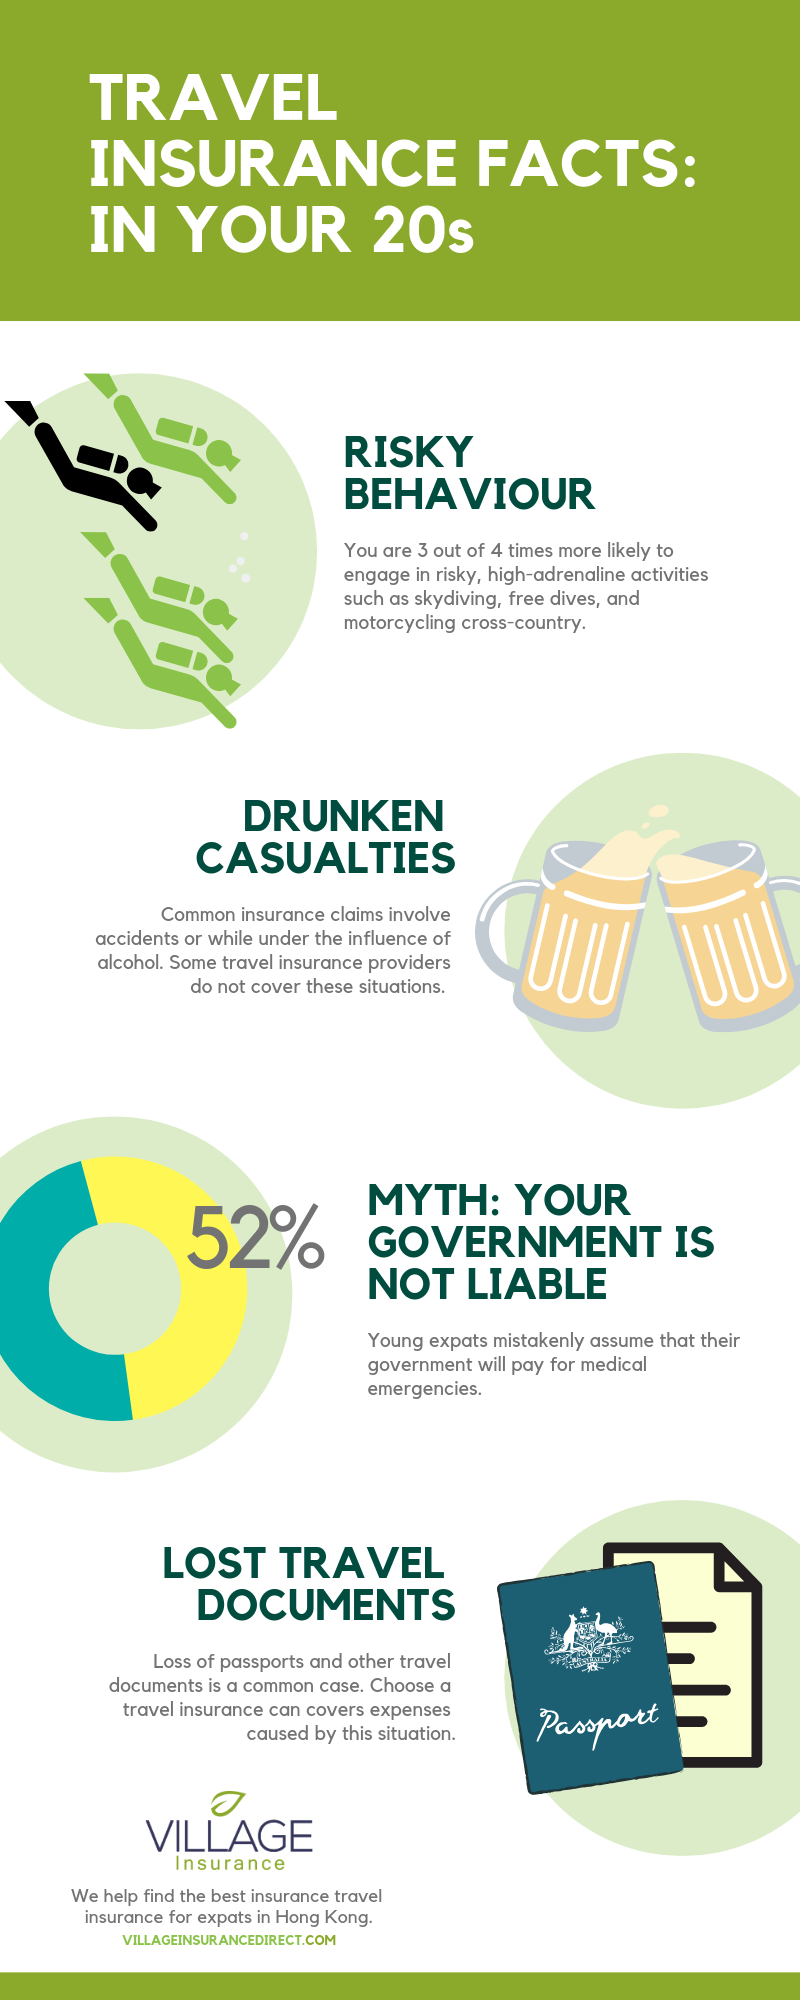 Travel insurance facts: Traveling in your 20s - Village Insurance Direct